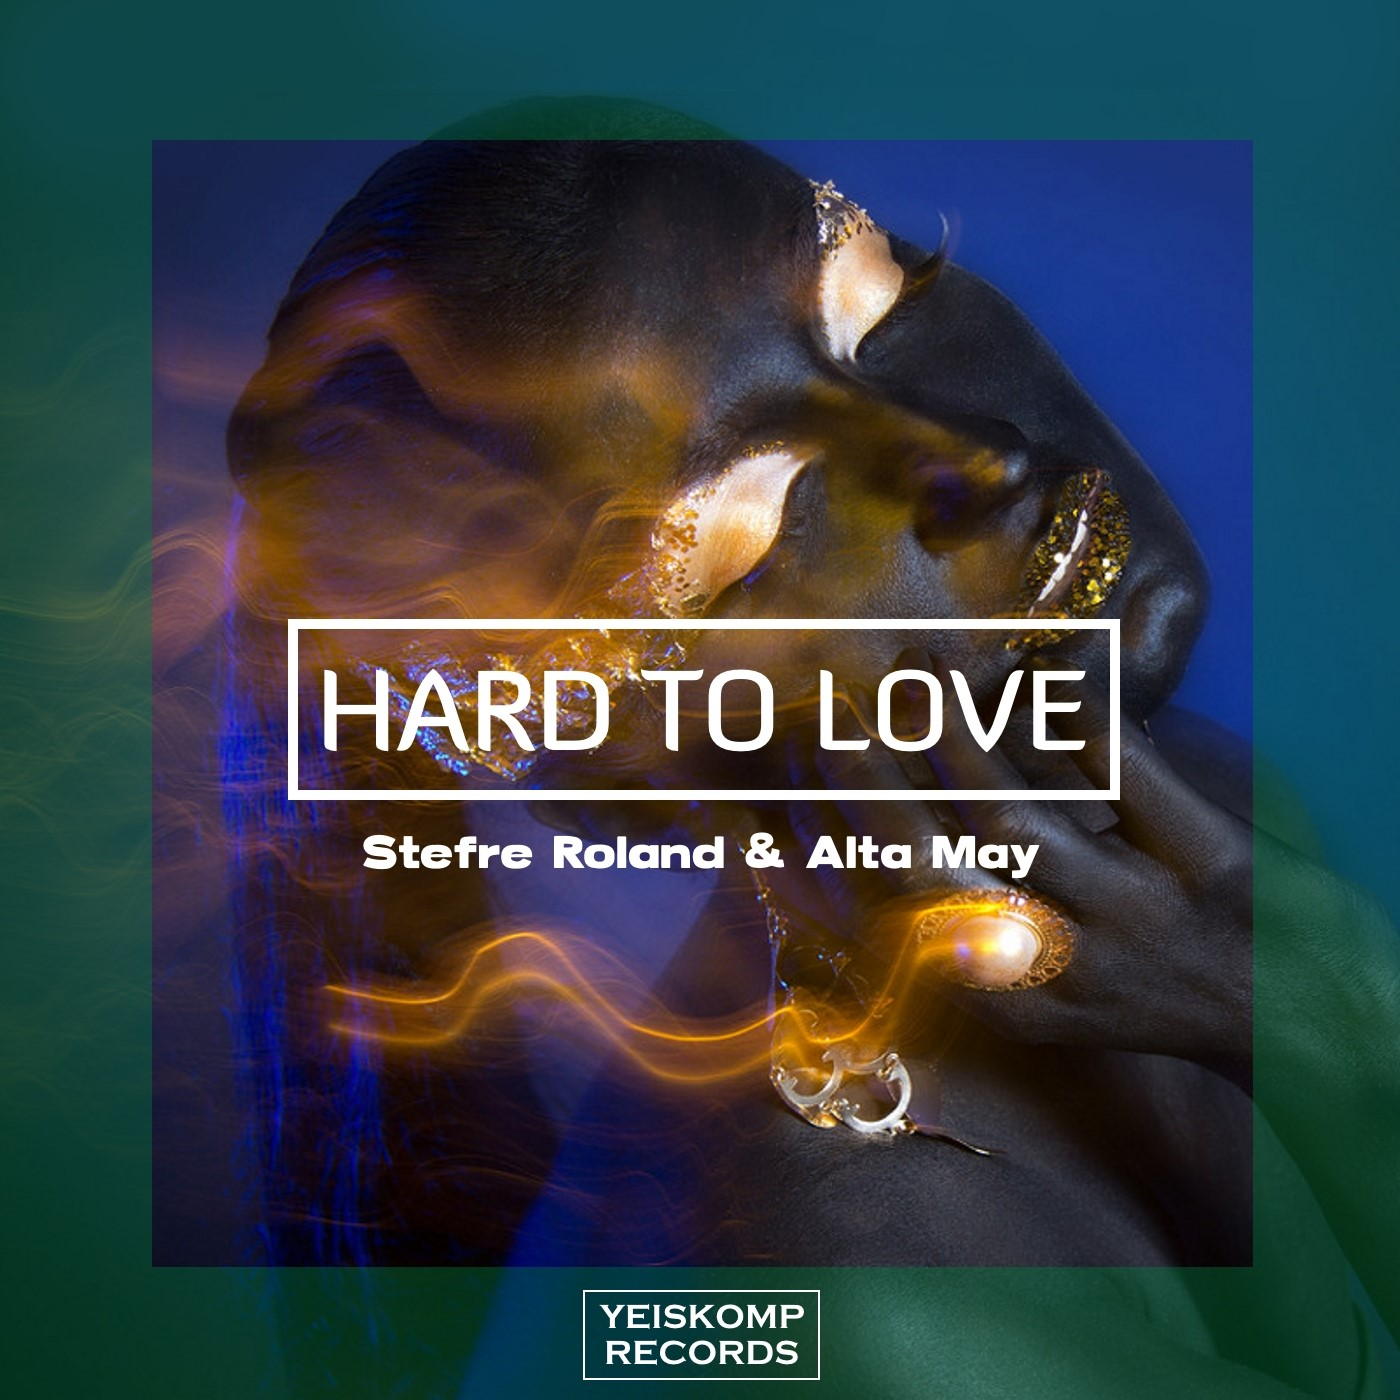 Stefre Roland & Alta May - Hard To Love (Original Mix)